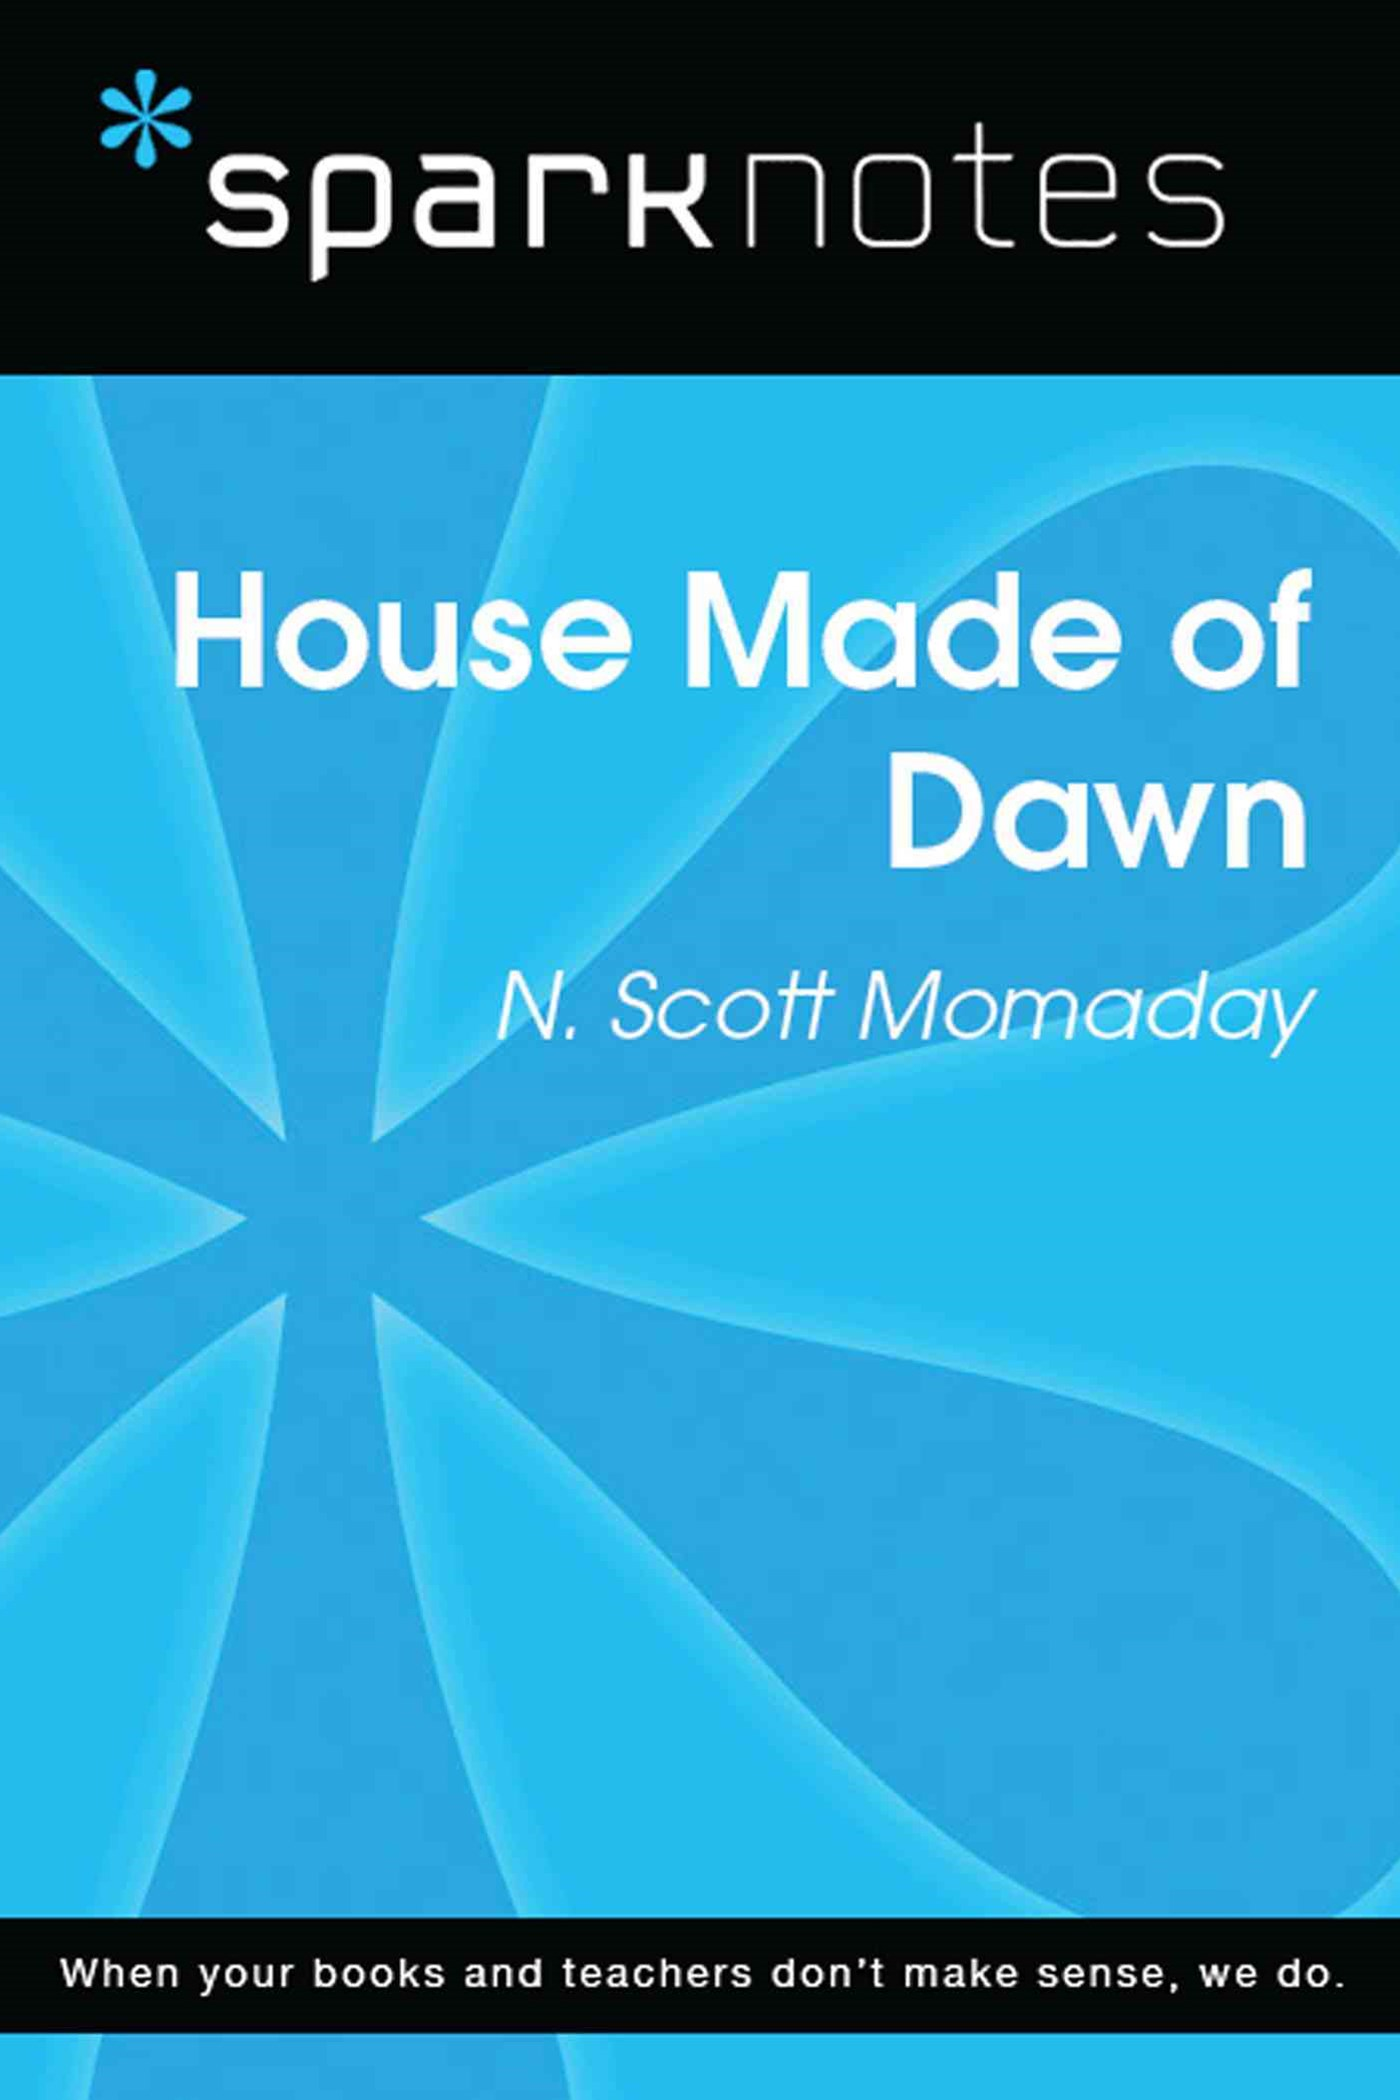 House Made of Dawn (SparkNotes Literature Guide)